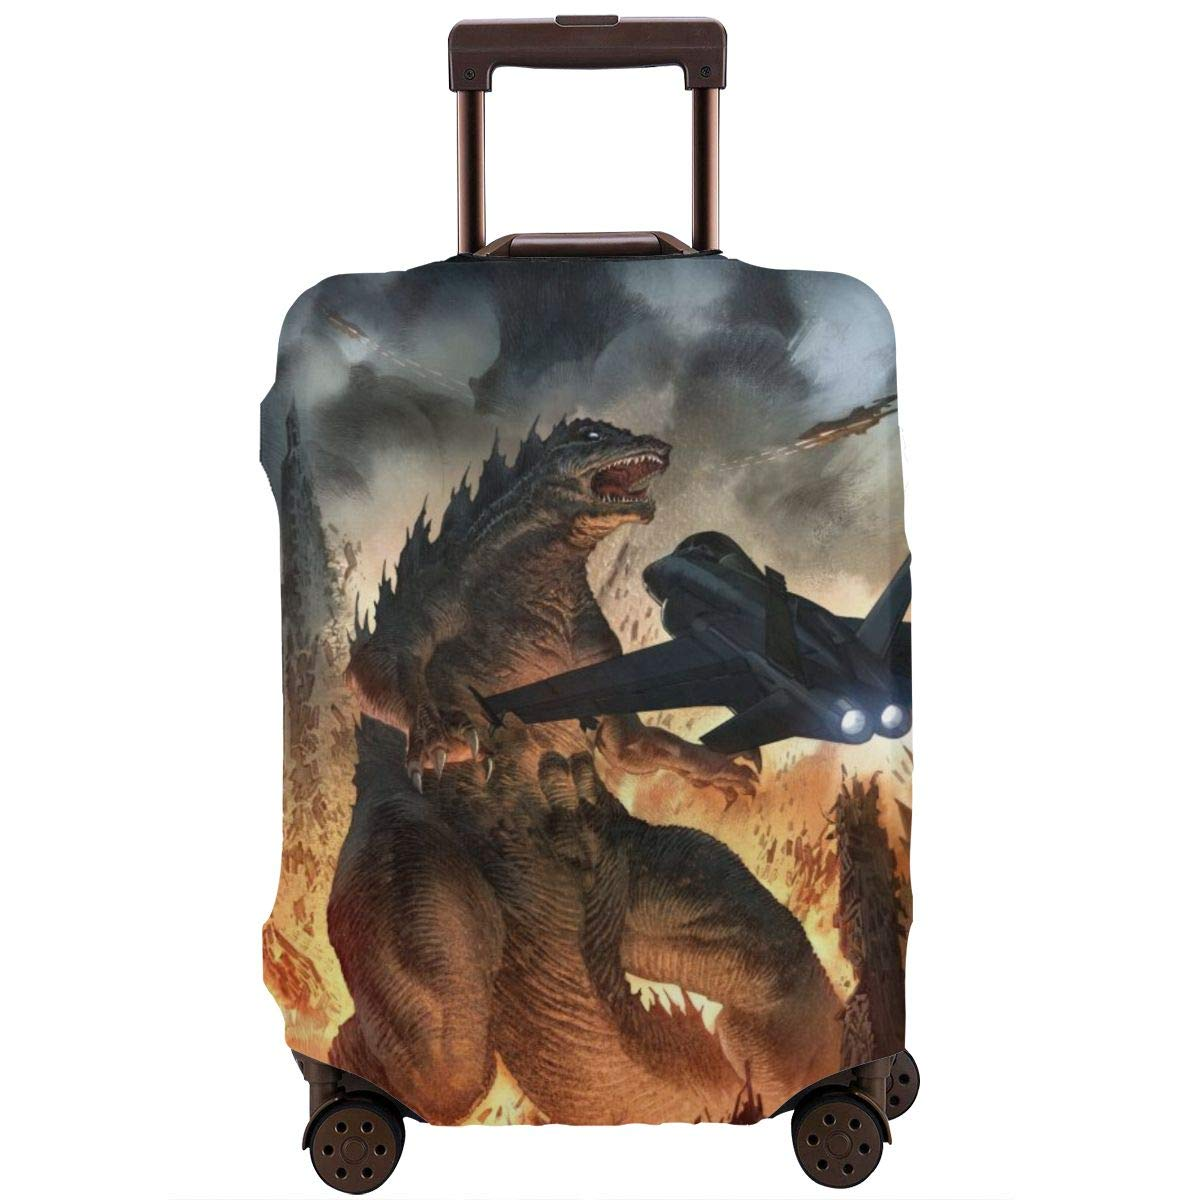 Godzilla Elastic Travel Luggage Cover,Double Print Fashion Washable Suitcase Protective Cover Fit For 18-32 Inch Luggage